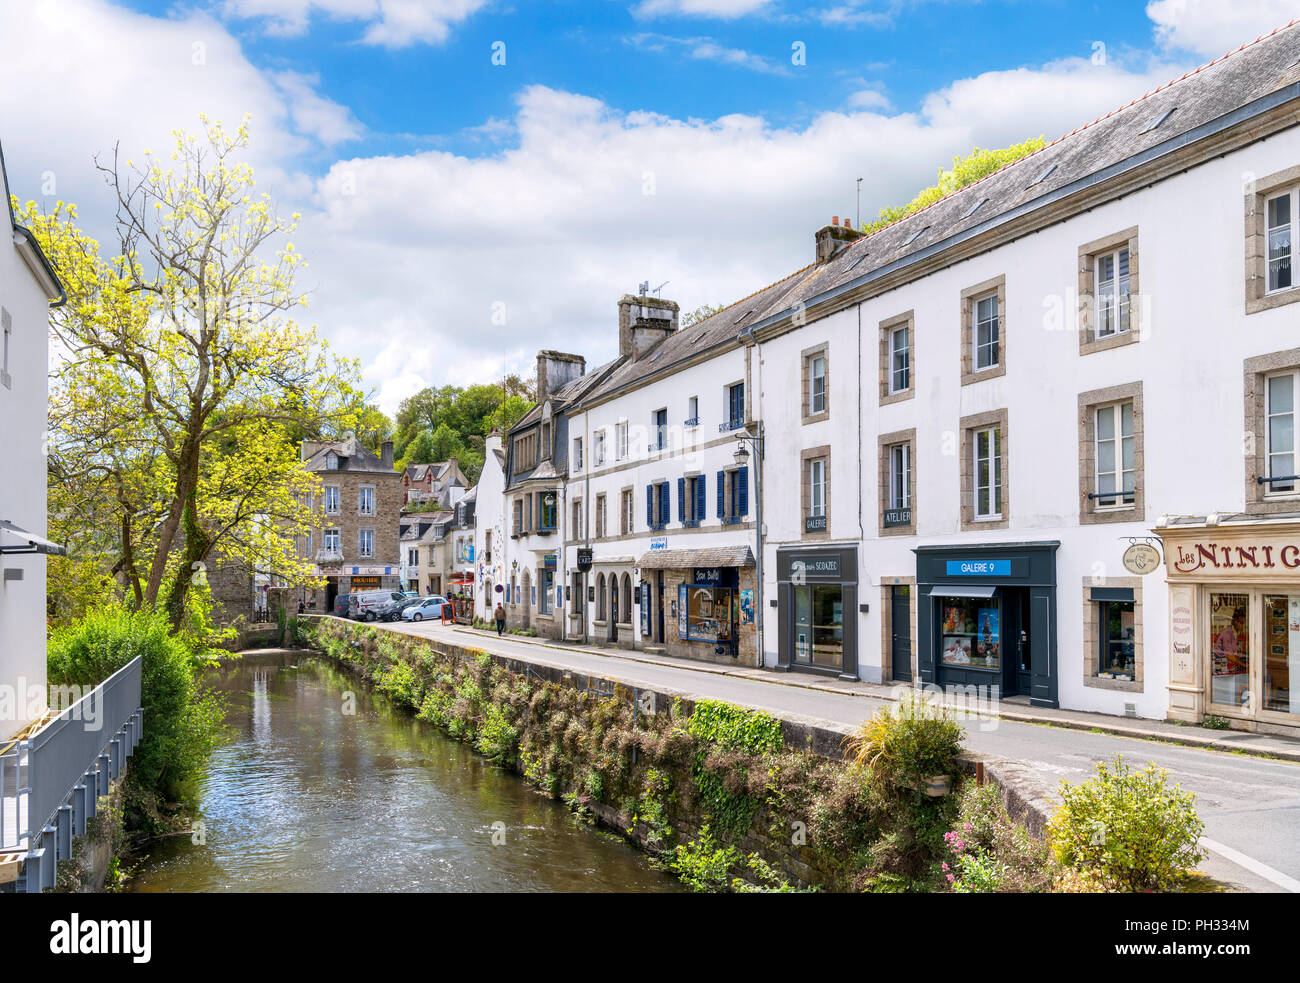 Shops along the River Aven, Pont-Aven, Finistere, Brittany, France - Stock Image